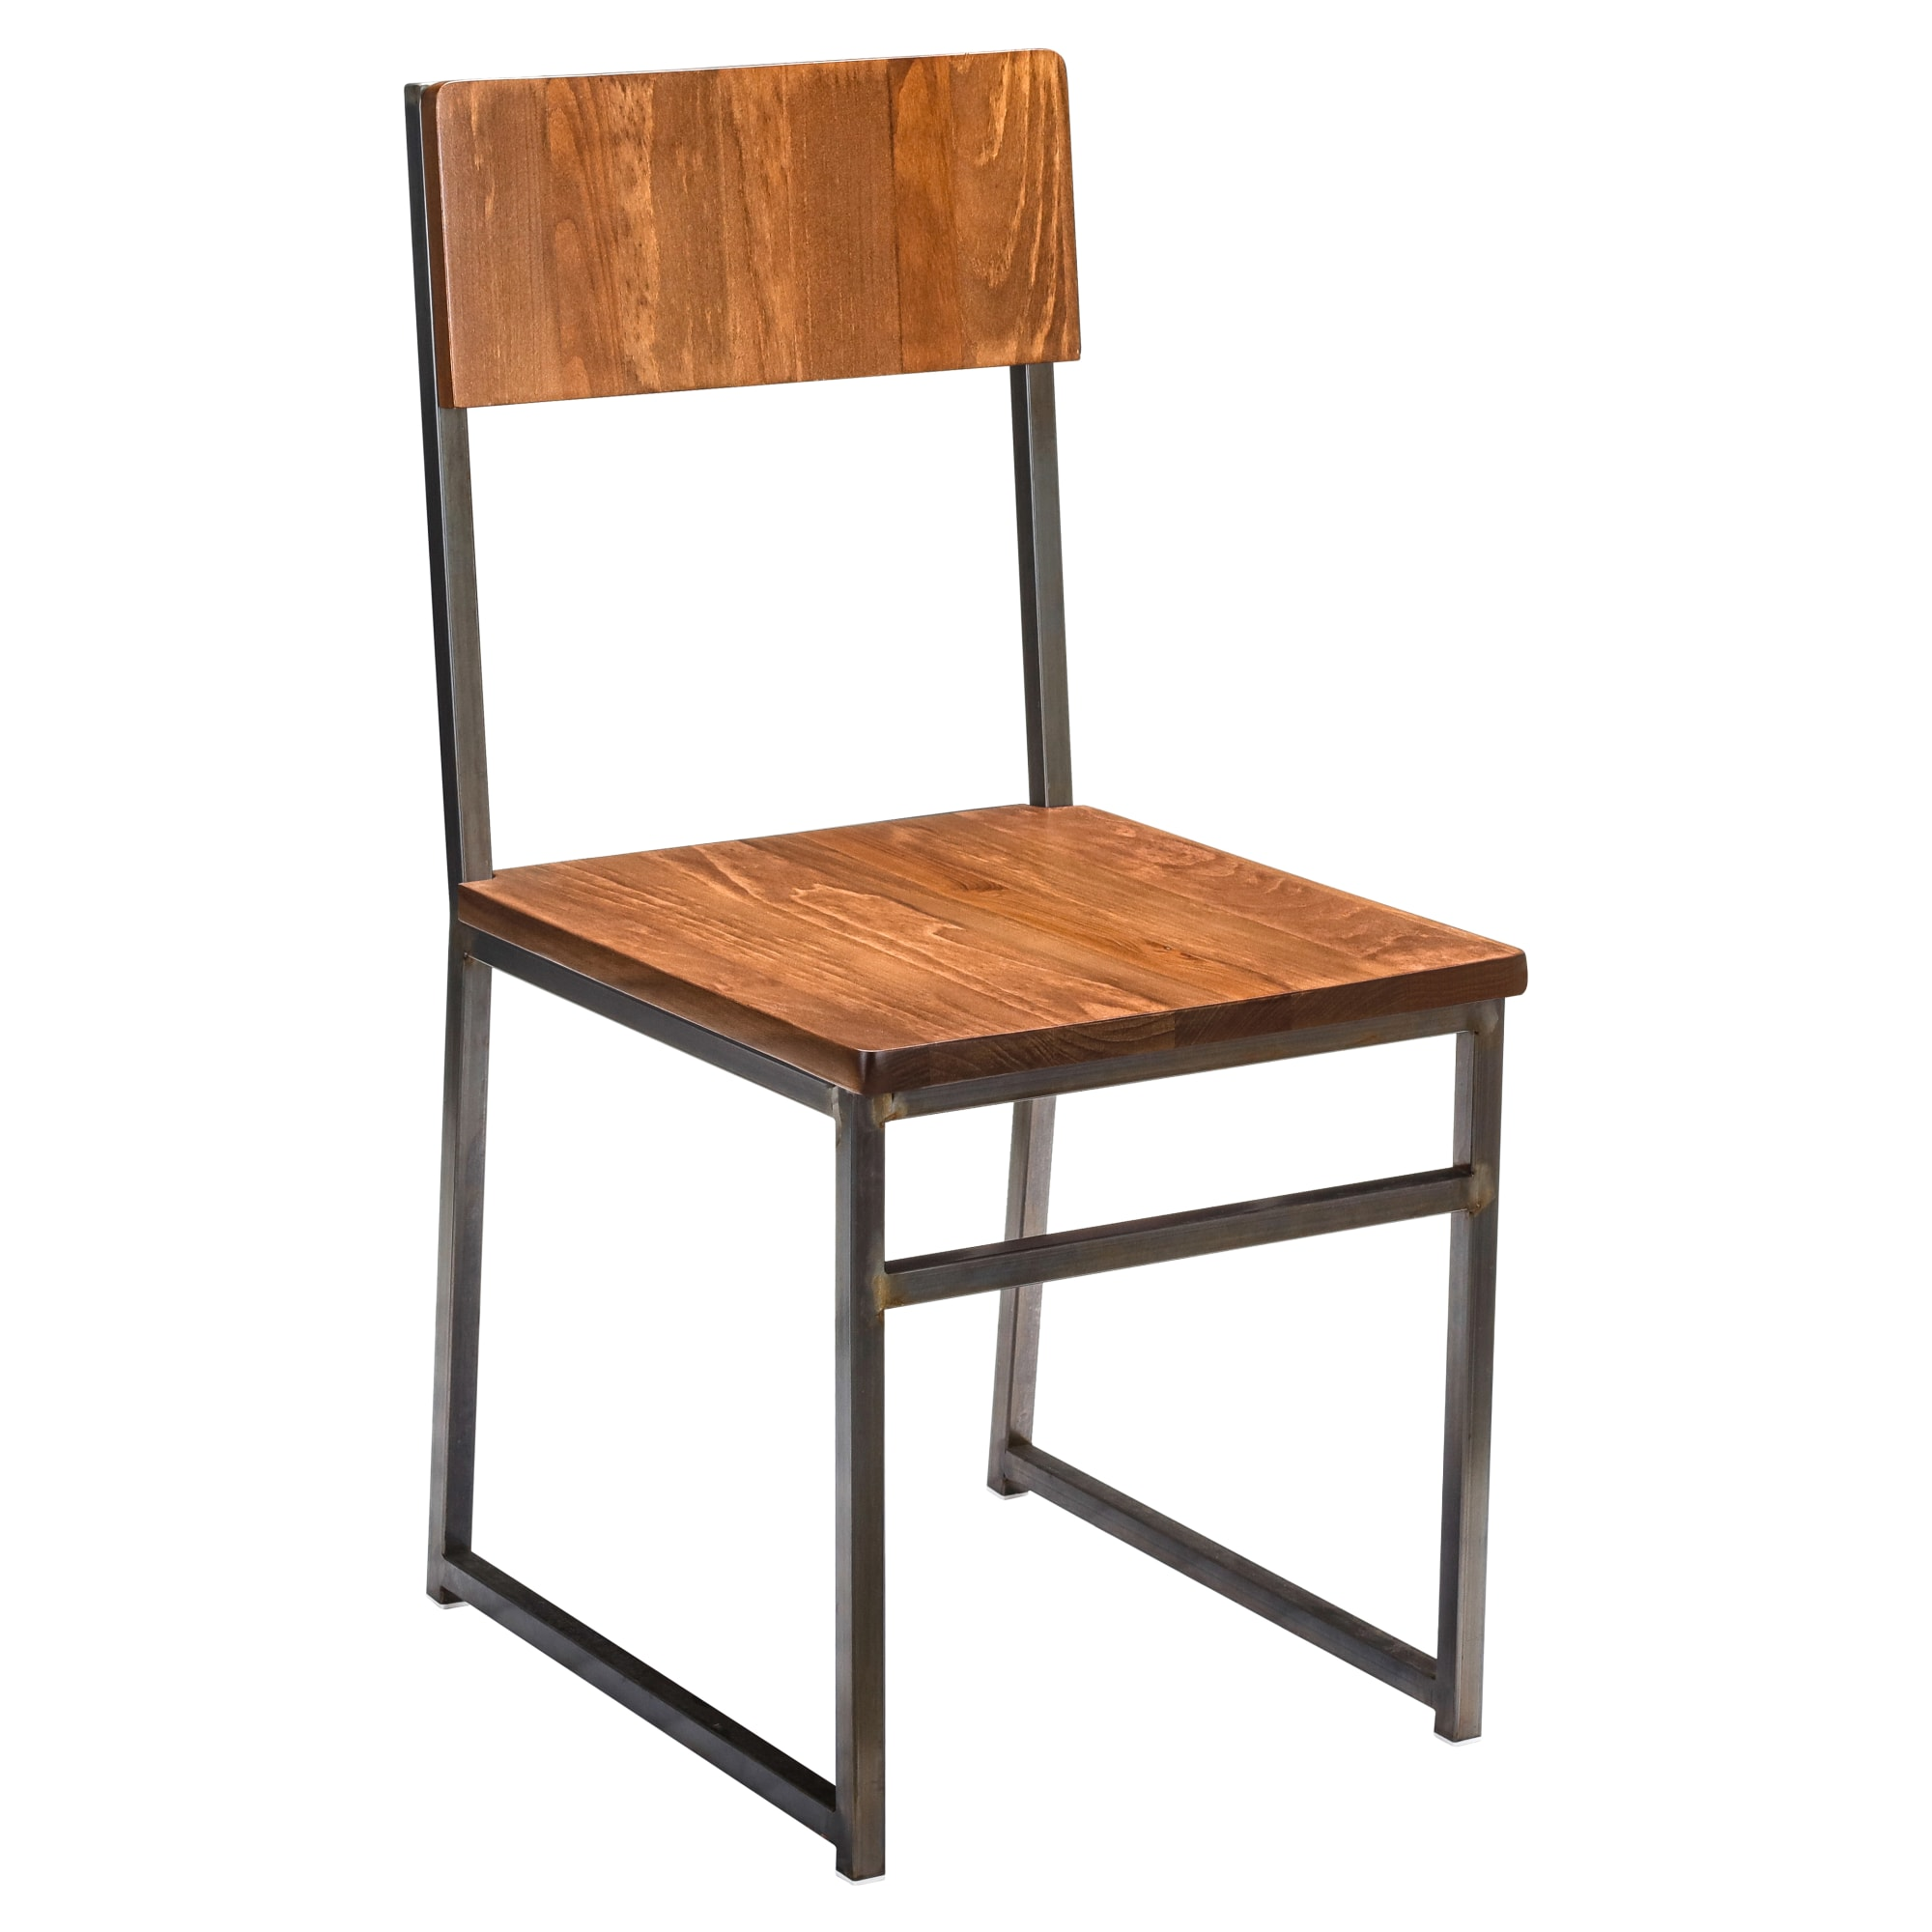 Industrial Series Metal Chair with a Wood Back with Industrial Series Metal Chair with a Wood Back